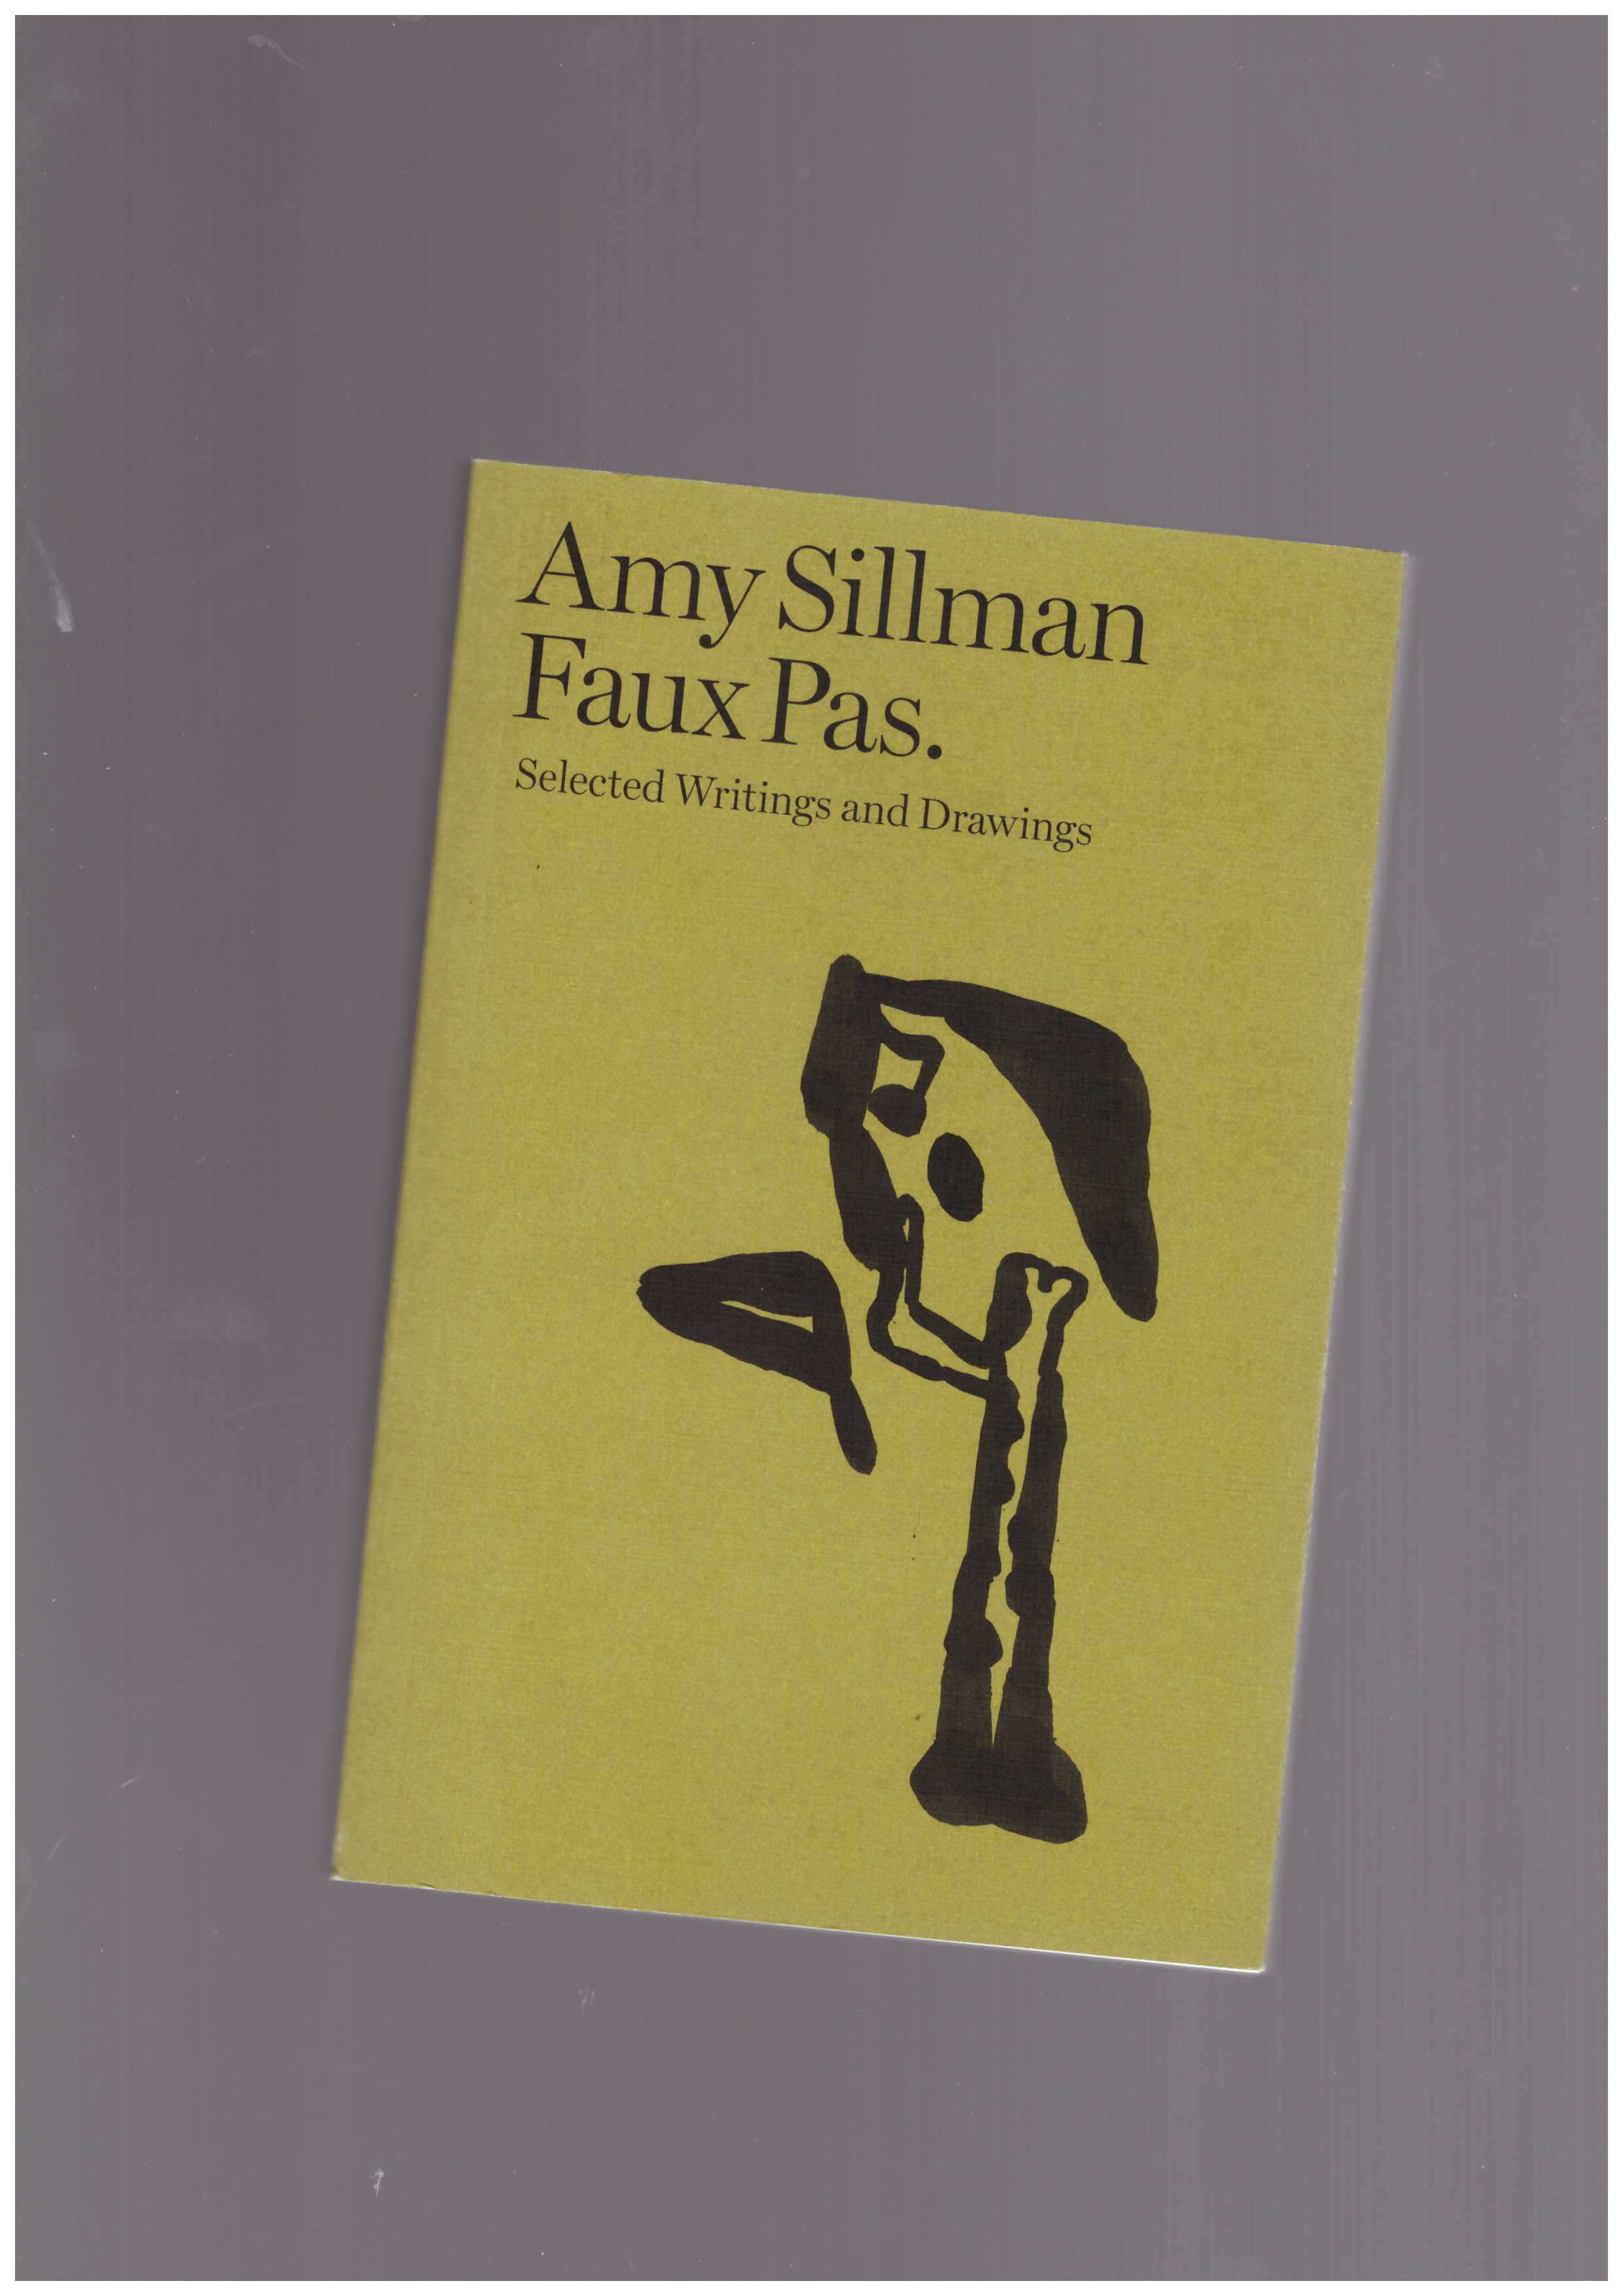 SILLMAN, Amy - Faux Pas. Selected Writings and Drawings